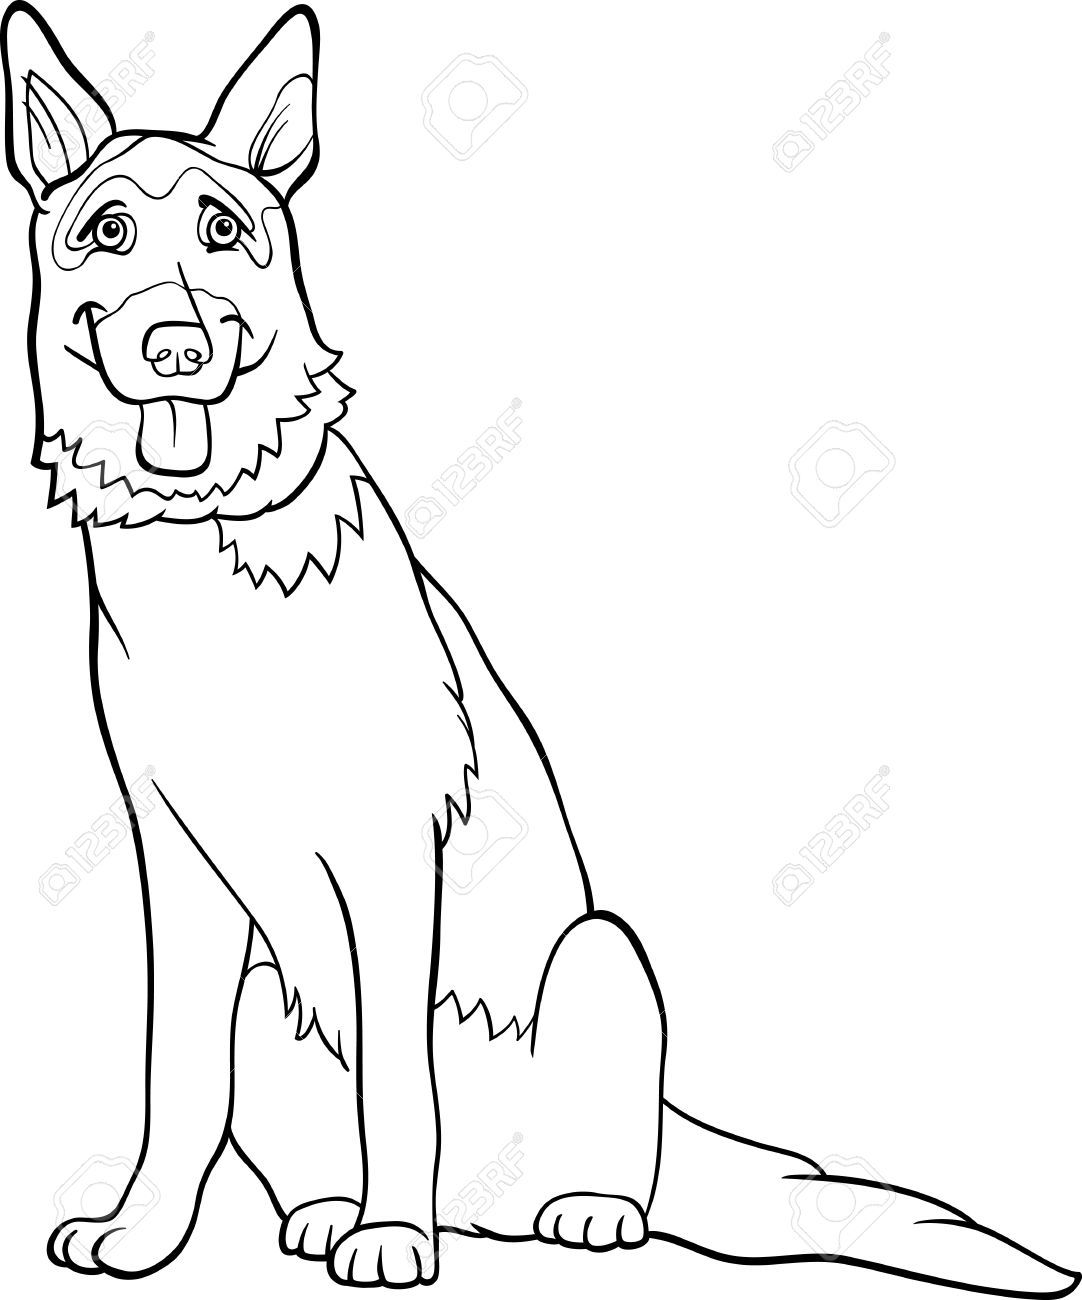 German Shepherd Coloring Pages To Download And Print For